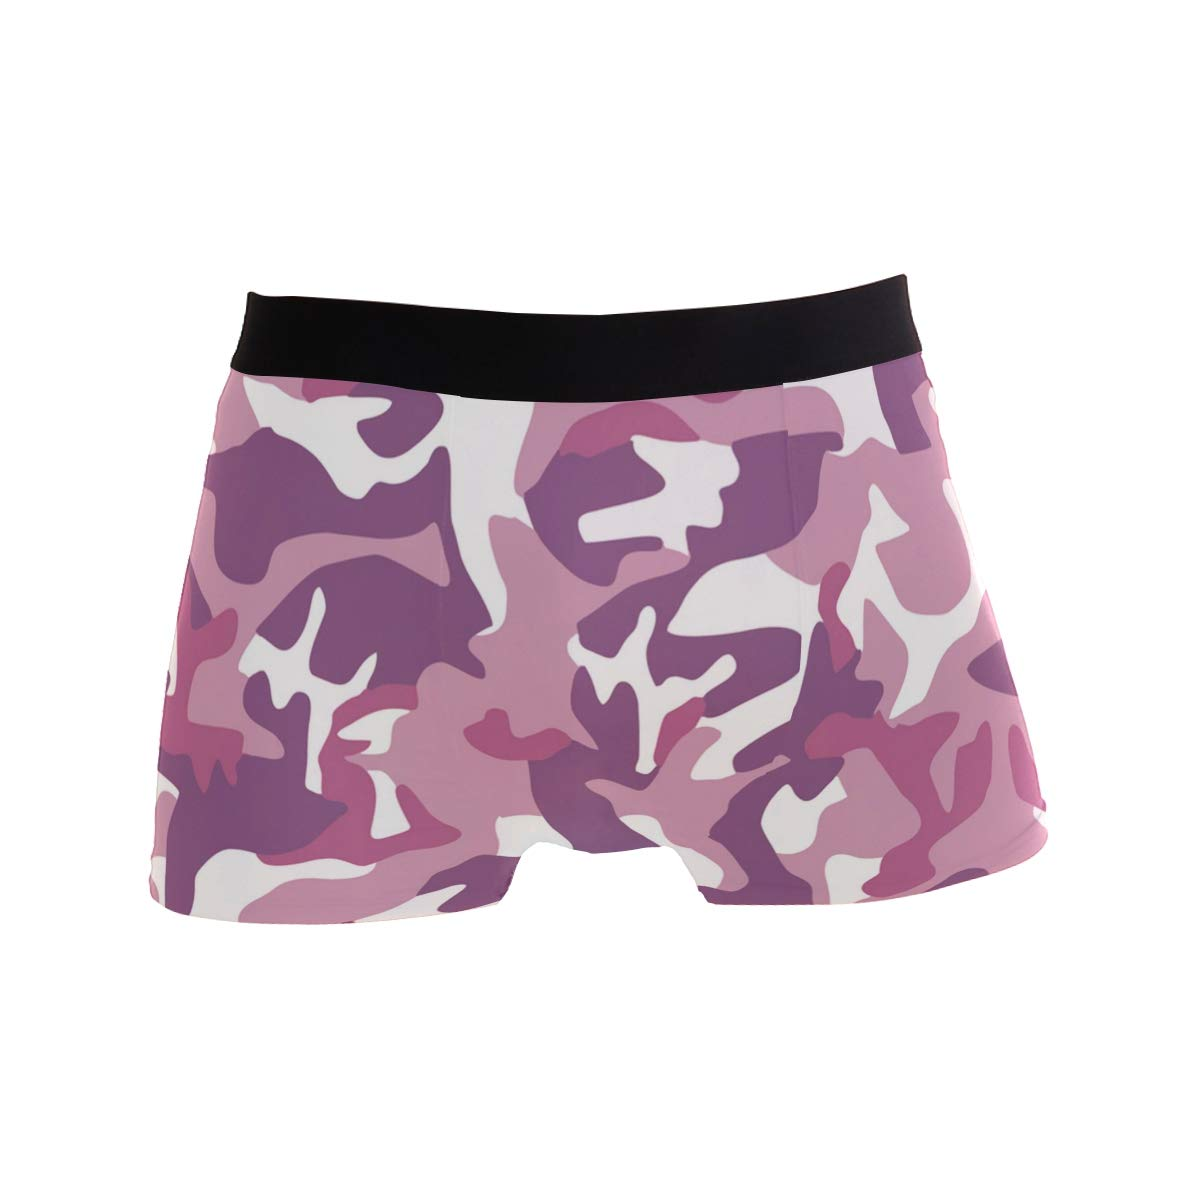 WaKaBlues Camo Military Hipster Pink Mens Sport Boxer Brief Breathable Underwear